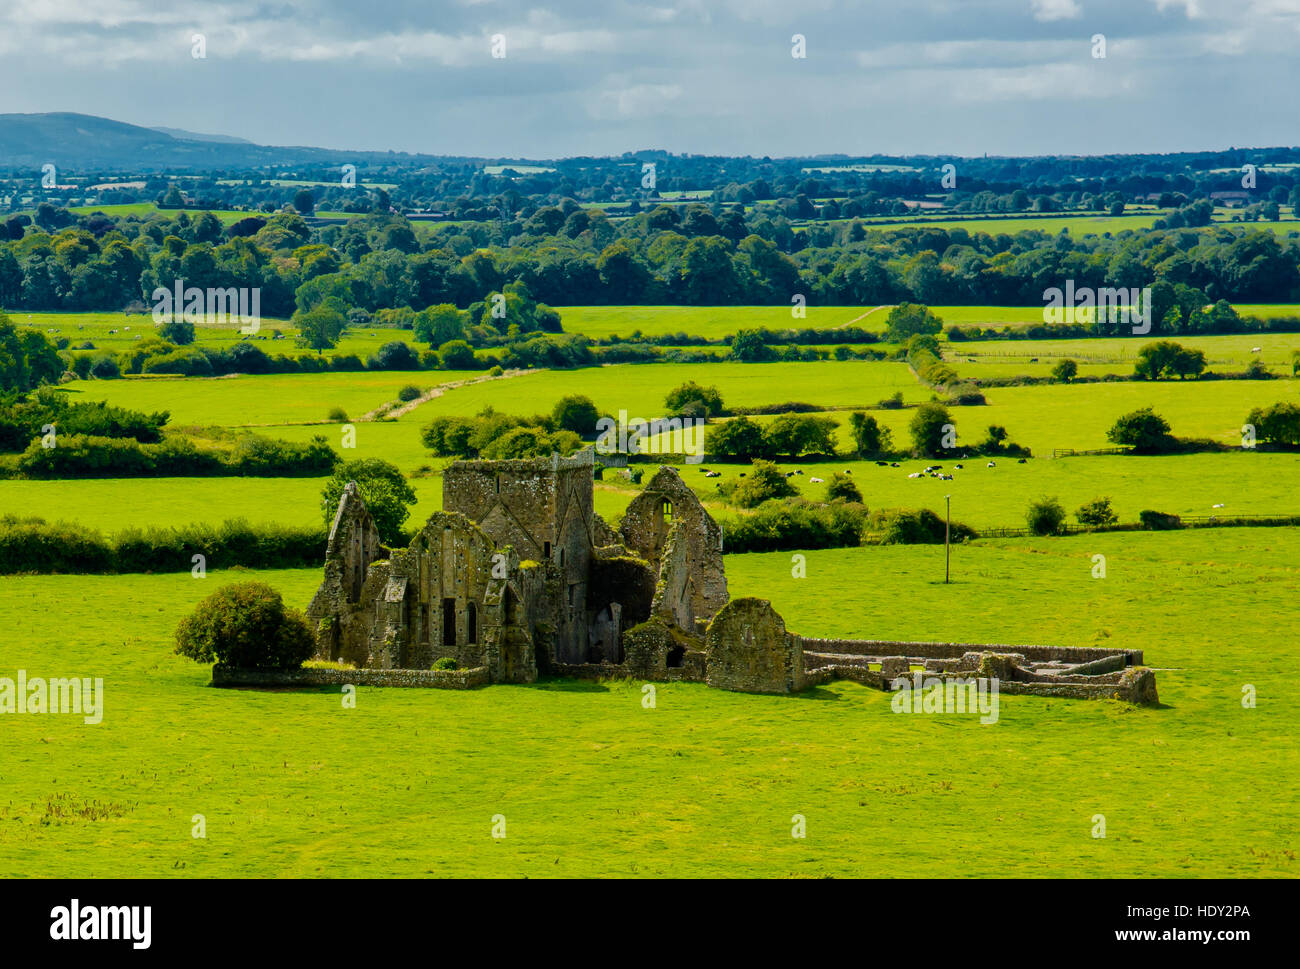 Castle Ruin In Landscape Of Tipperary In Ireland - Stock Image